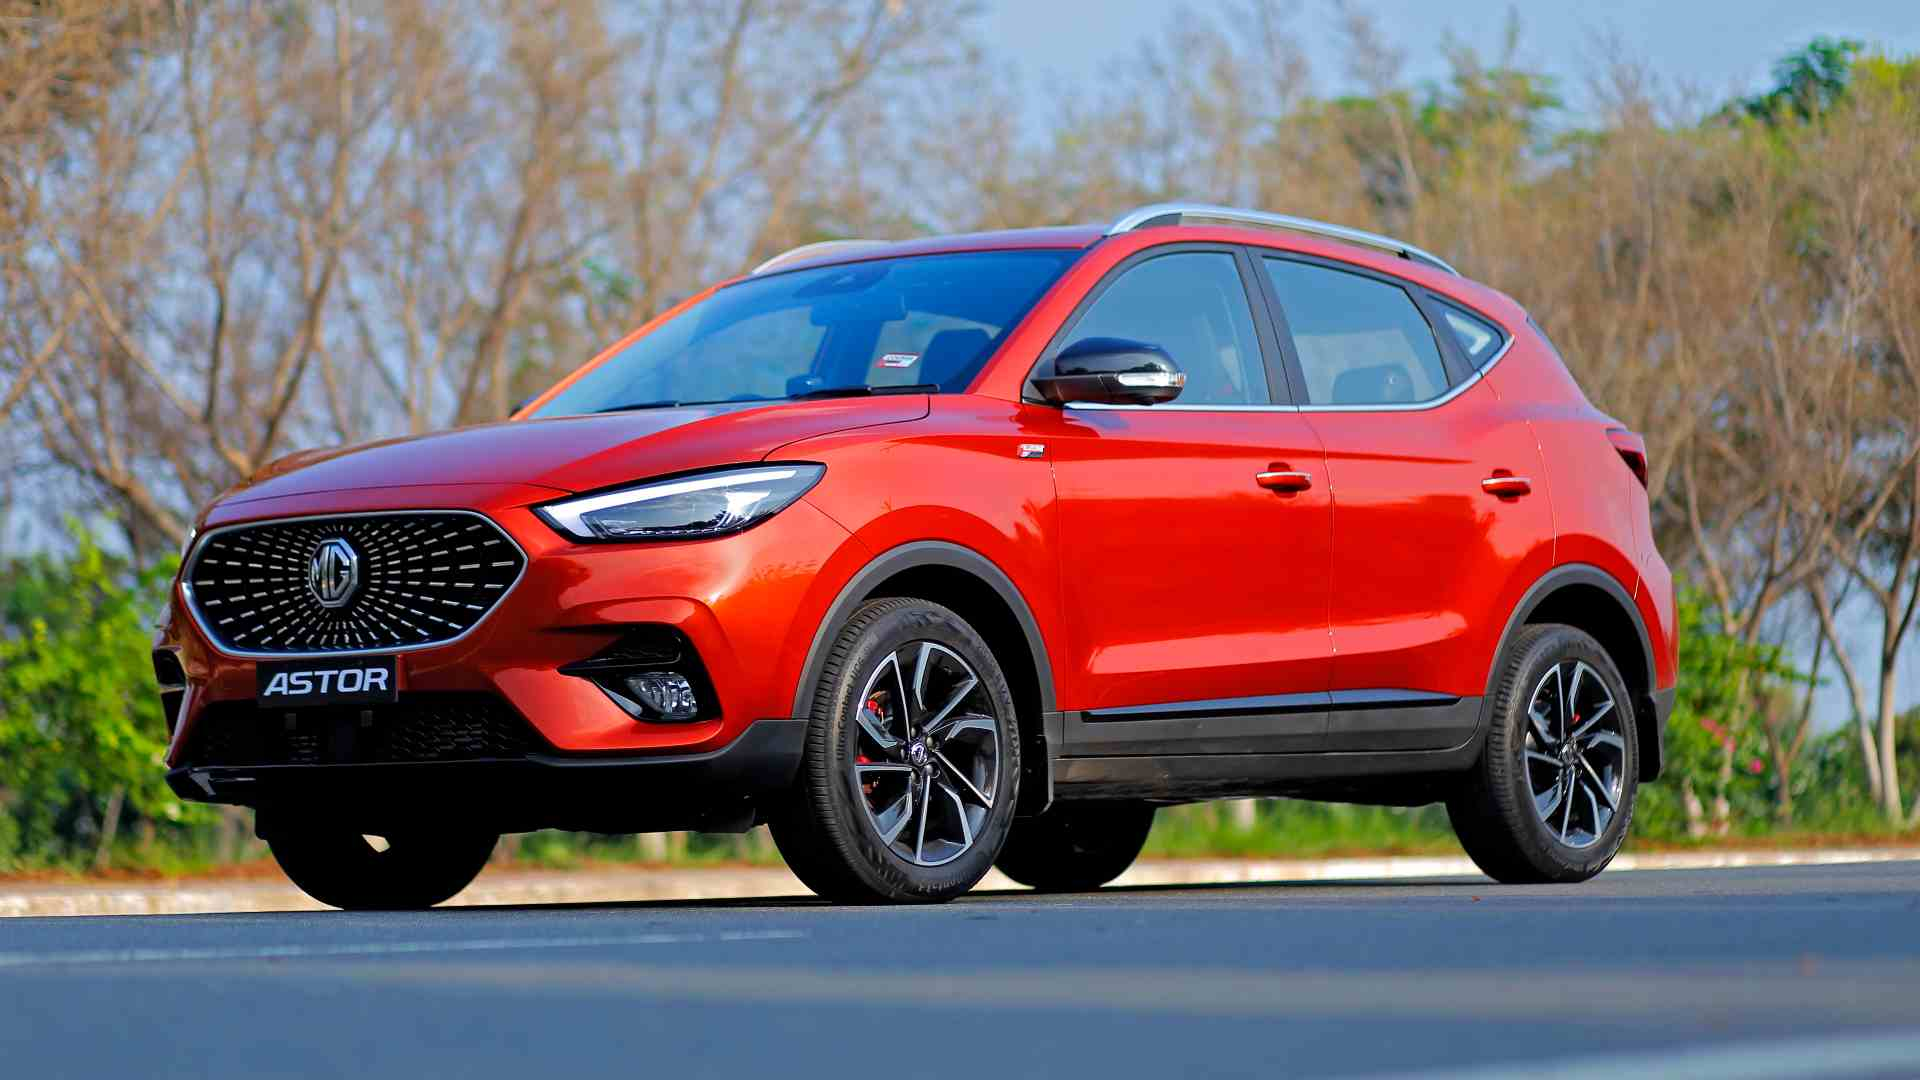 The Astor is the combustion-engine version of the ZS SUV, which India is already familiar with thanks to the ZS EV. Image: MG